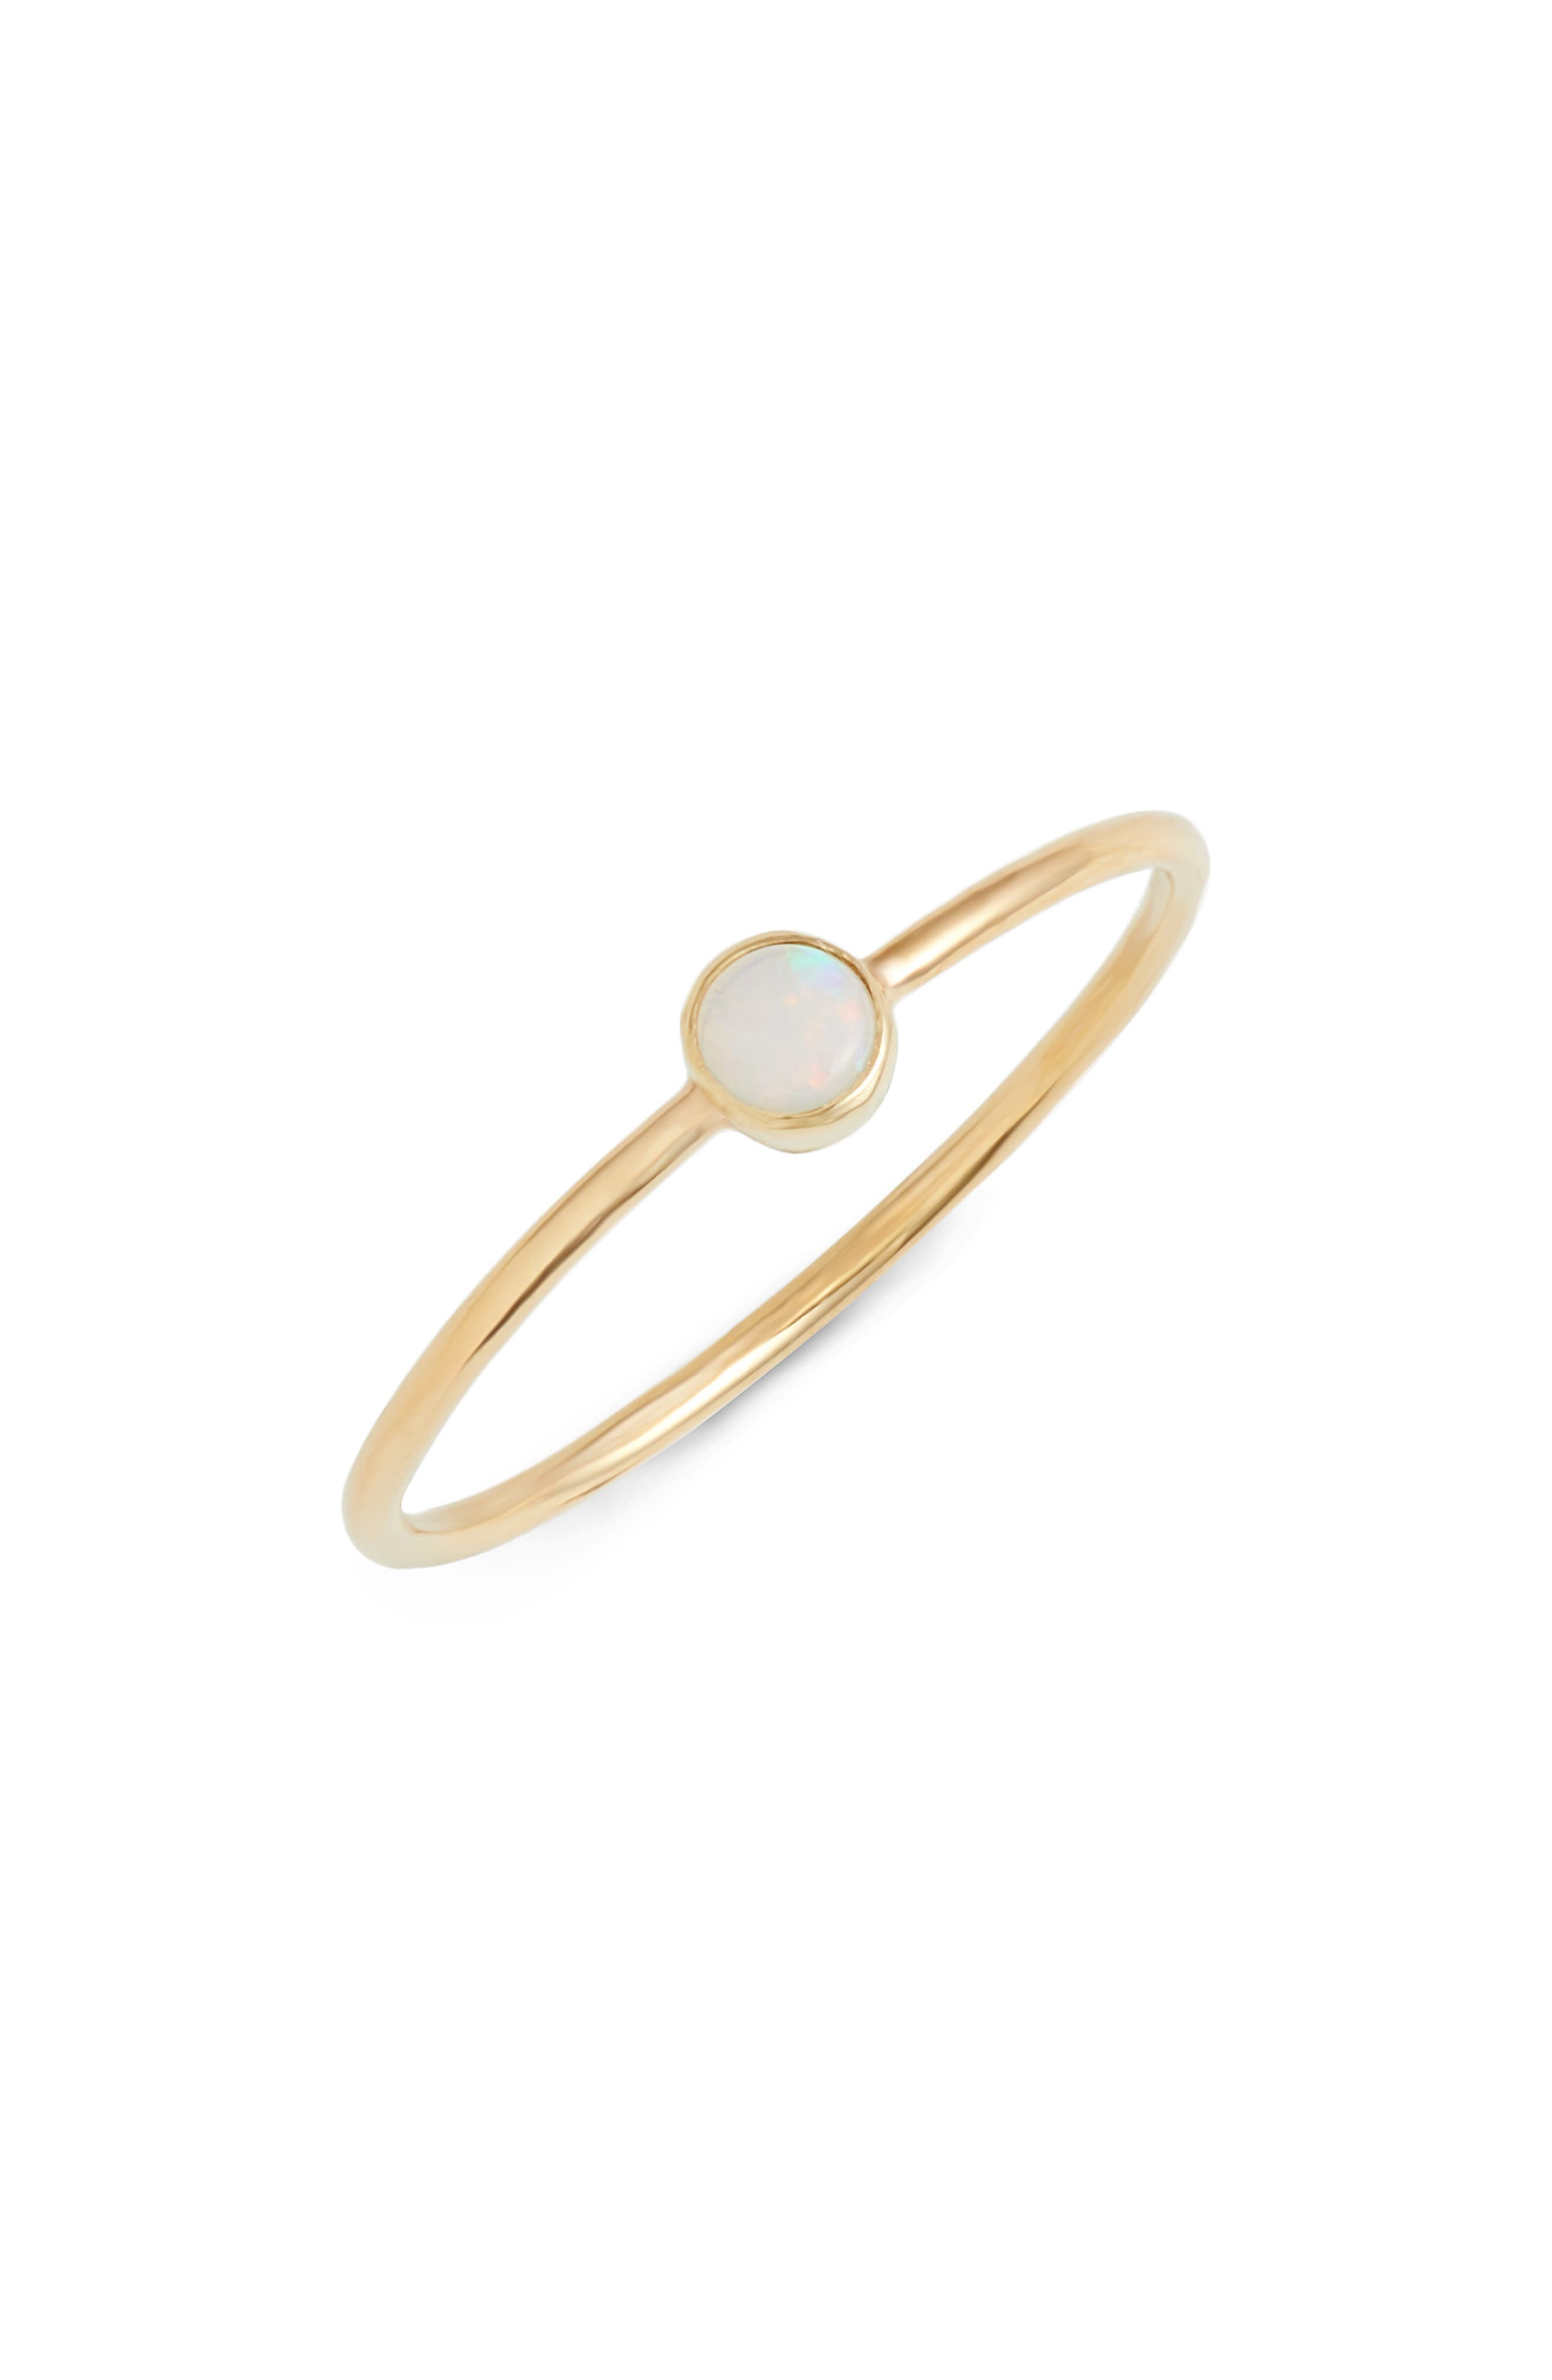 Opal Stacking Ring,                         Main,                         color, Yellow Gold/ Opal